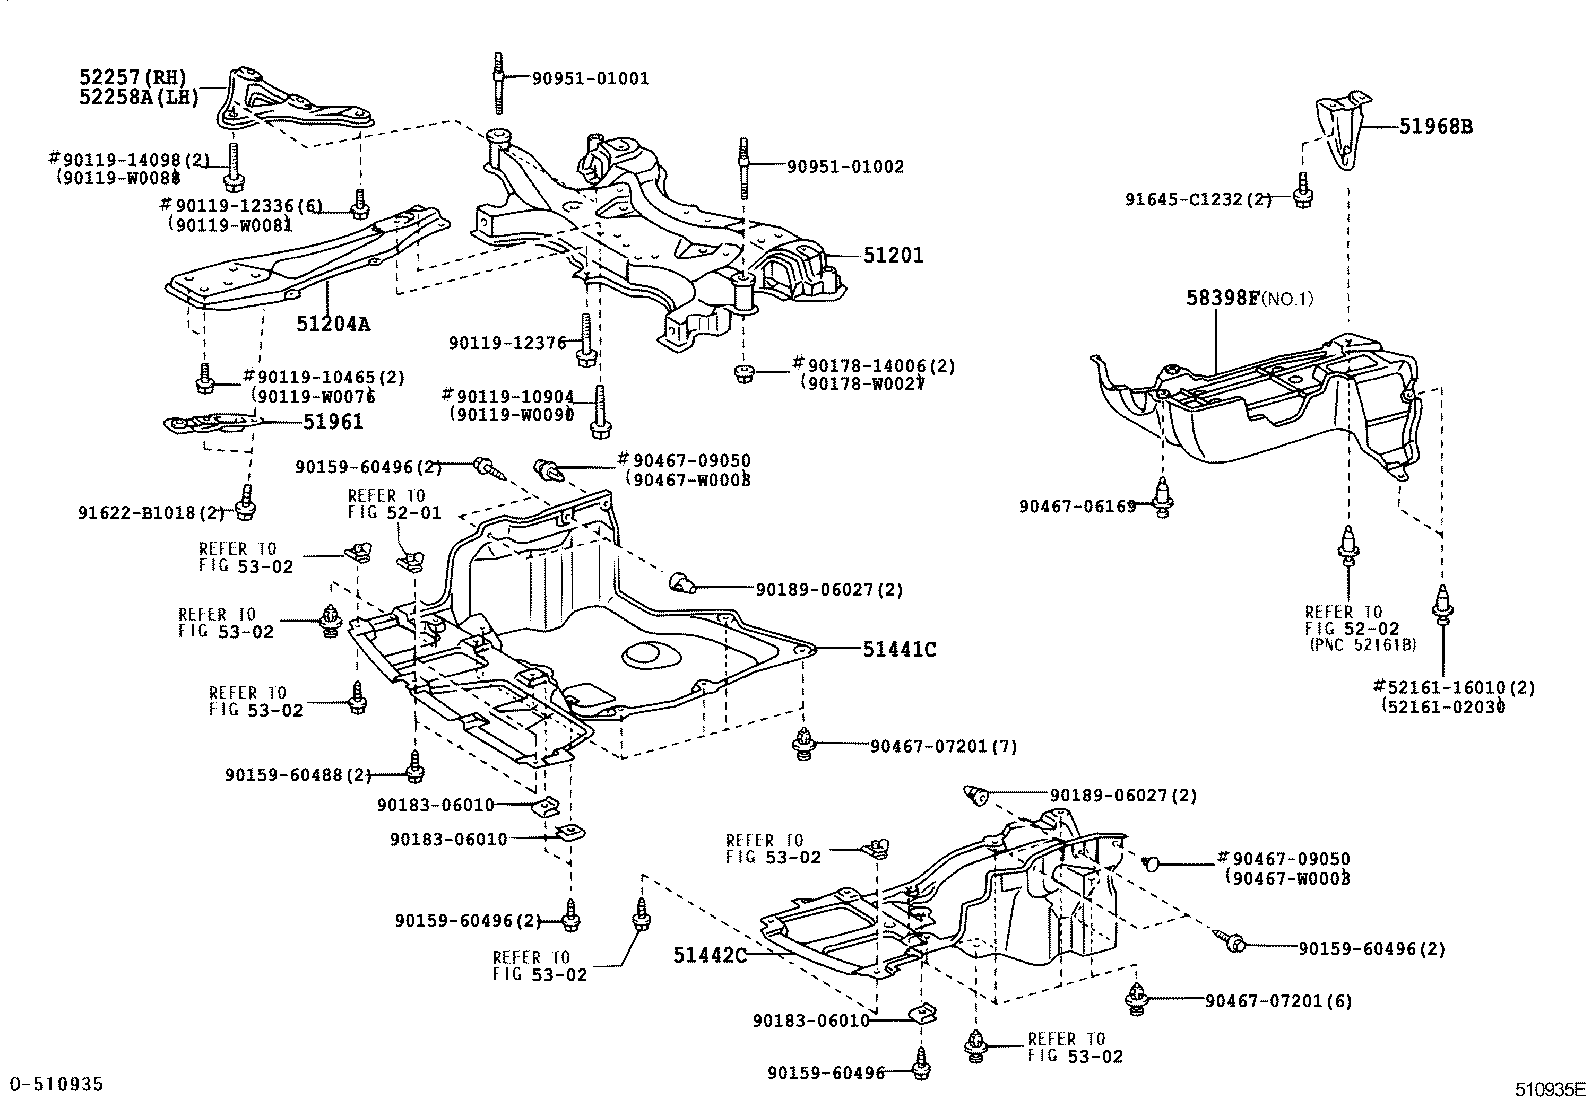 1986 Toyota Mr2 Parts Diagram. Toyota. Auto Wiring Diagram